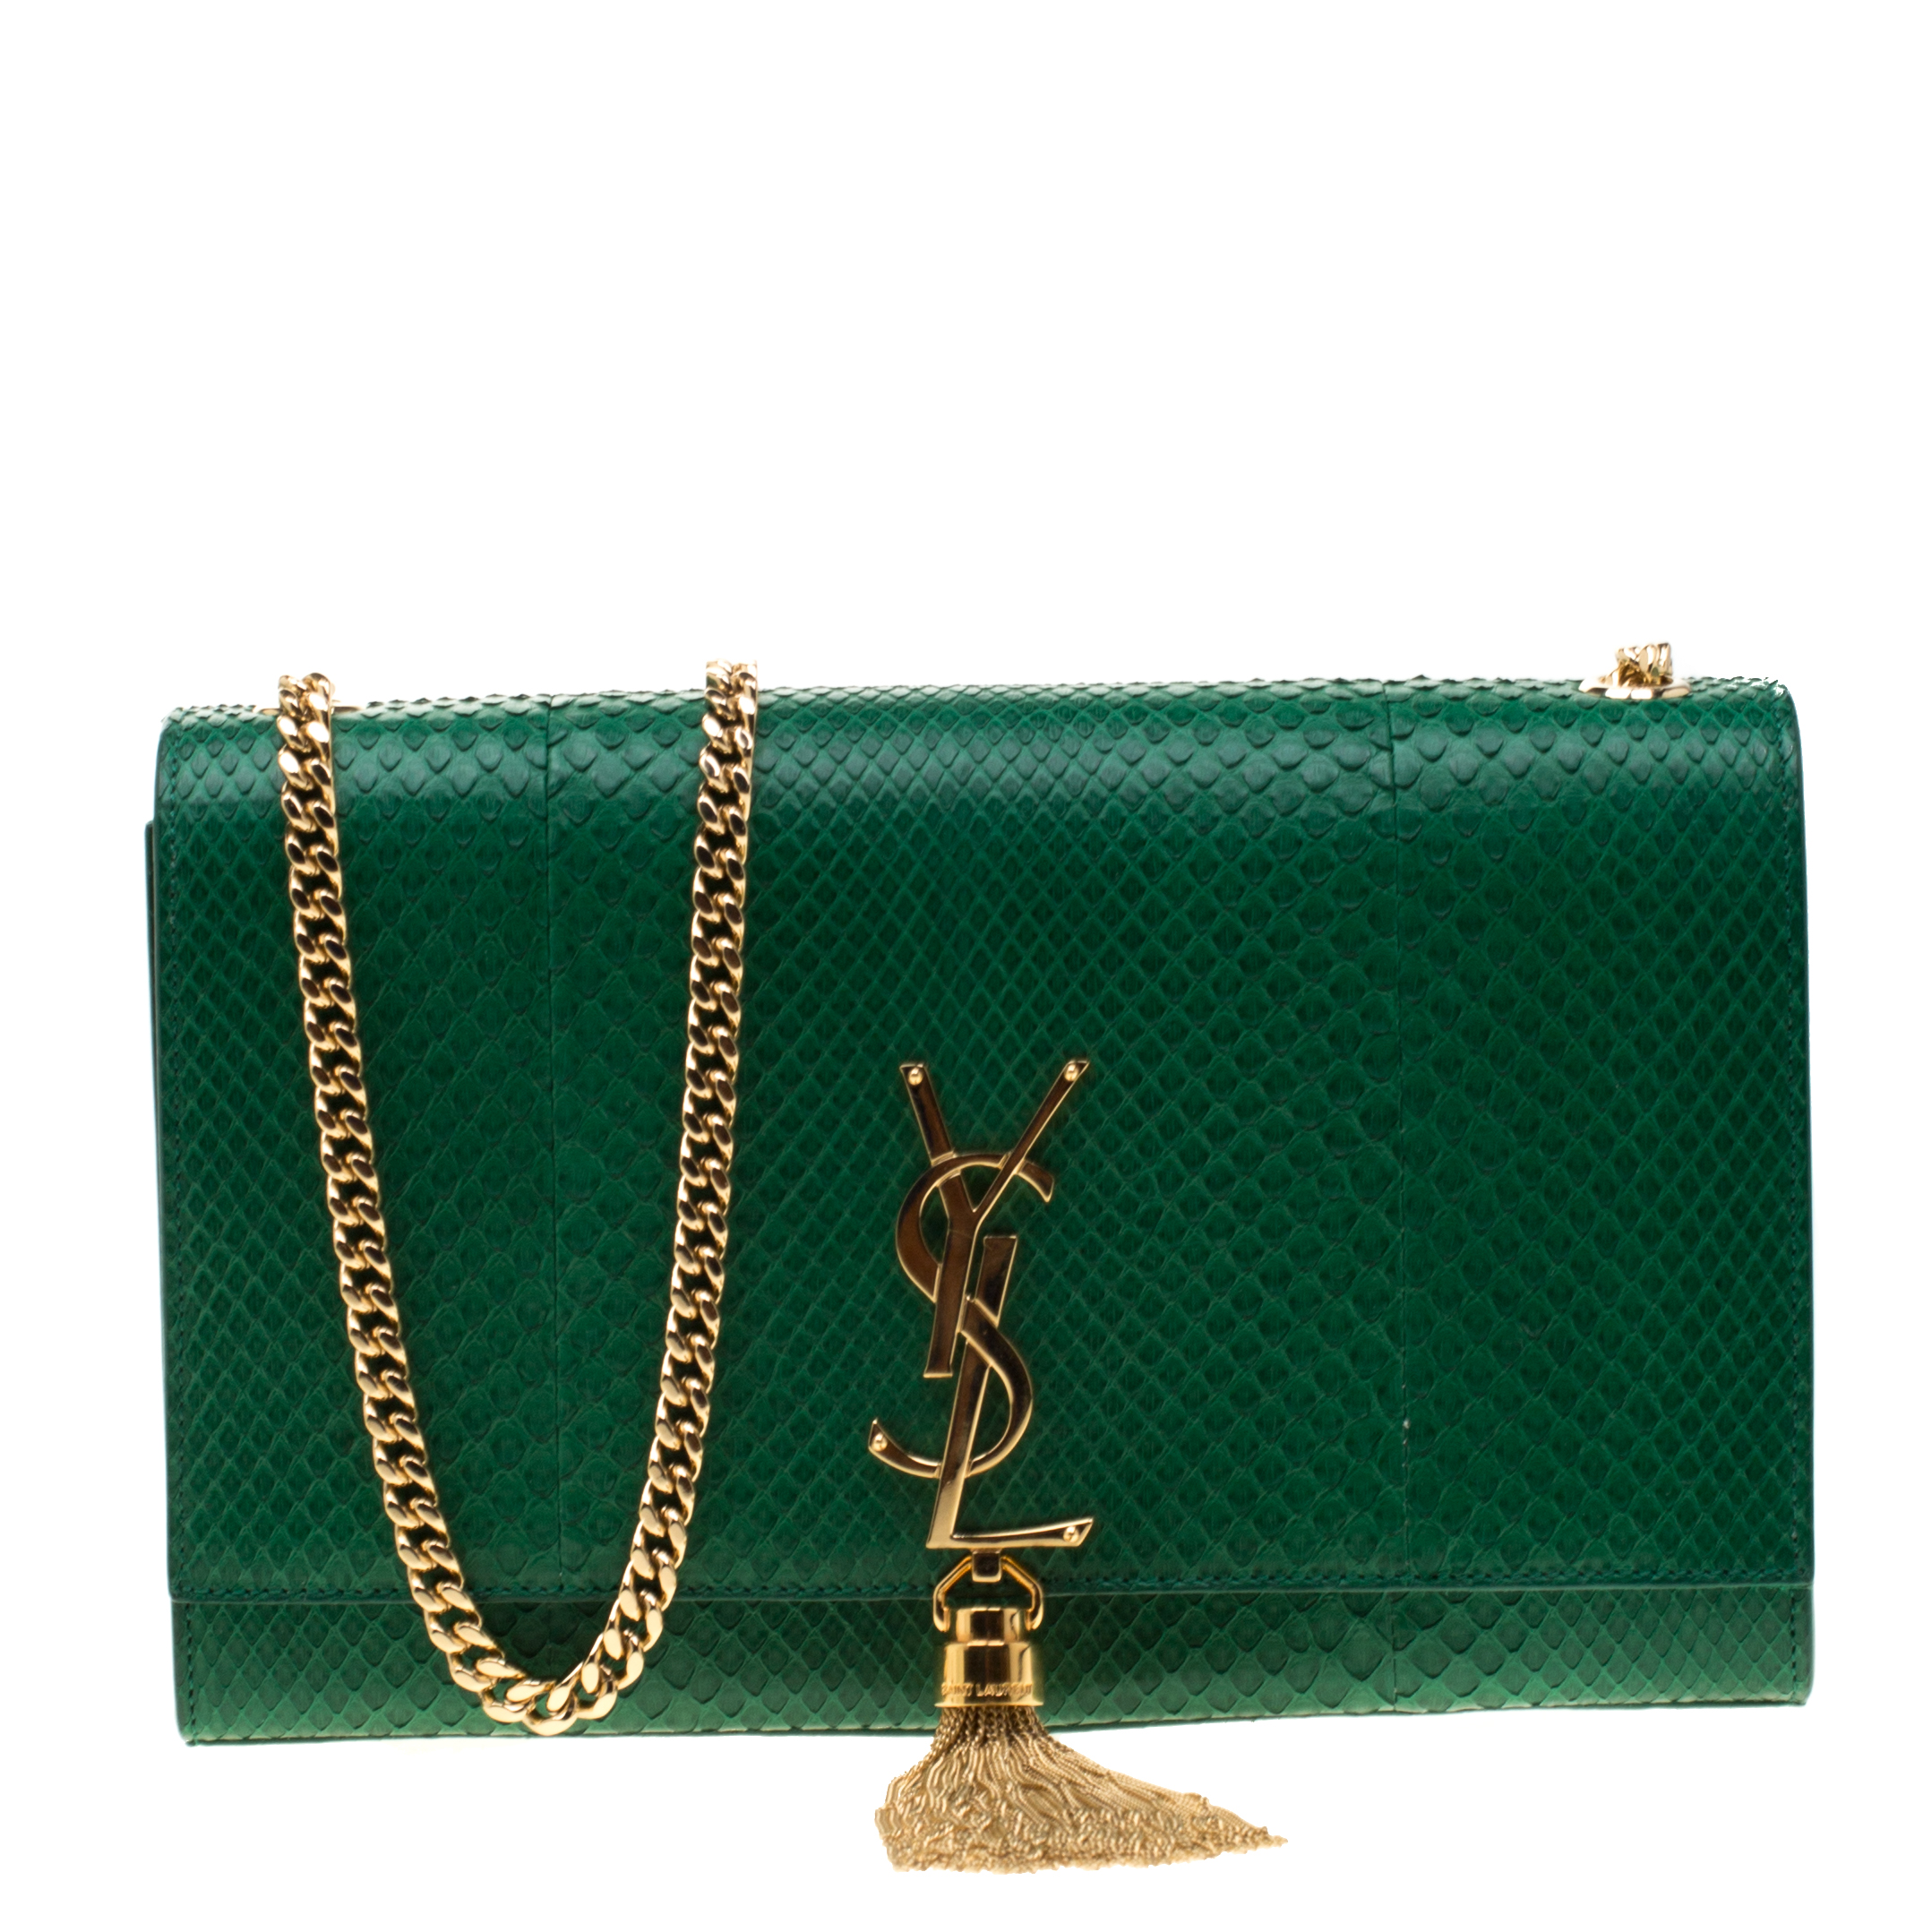 Saint Laurent Green Python Kate Monogram Shoulder Bag